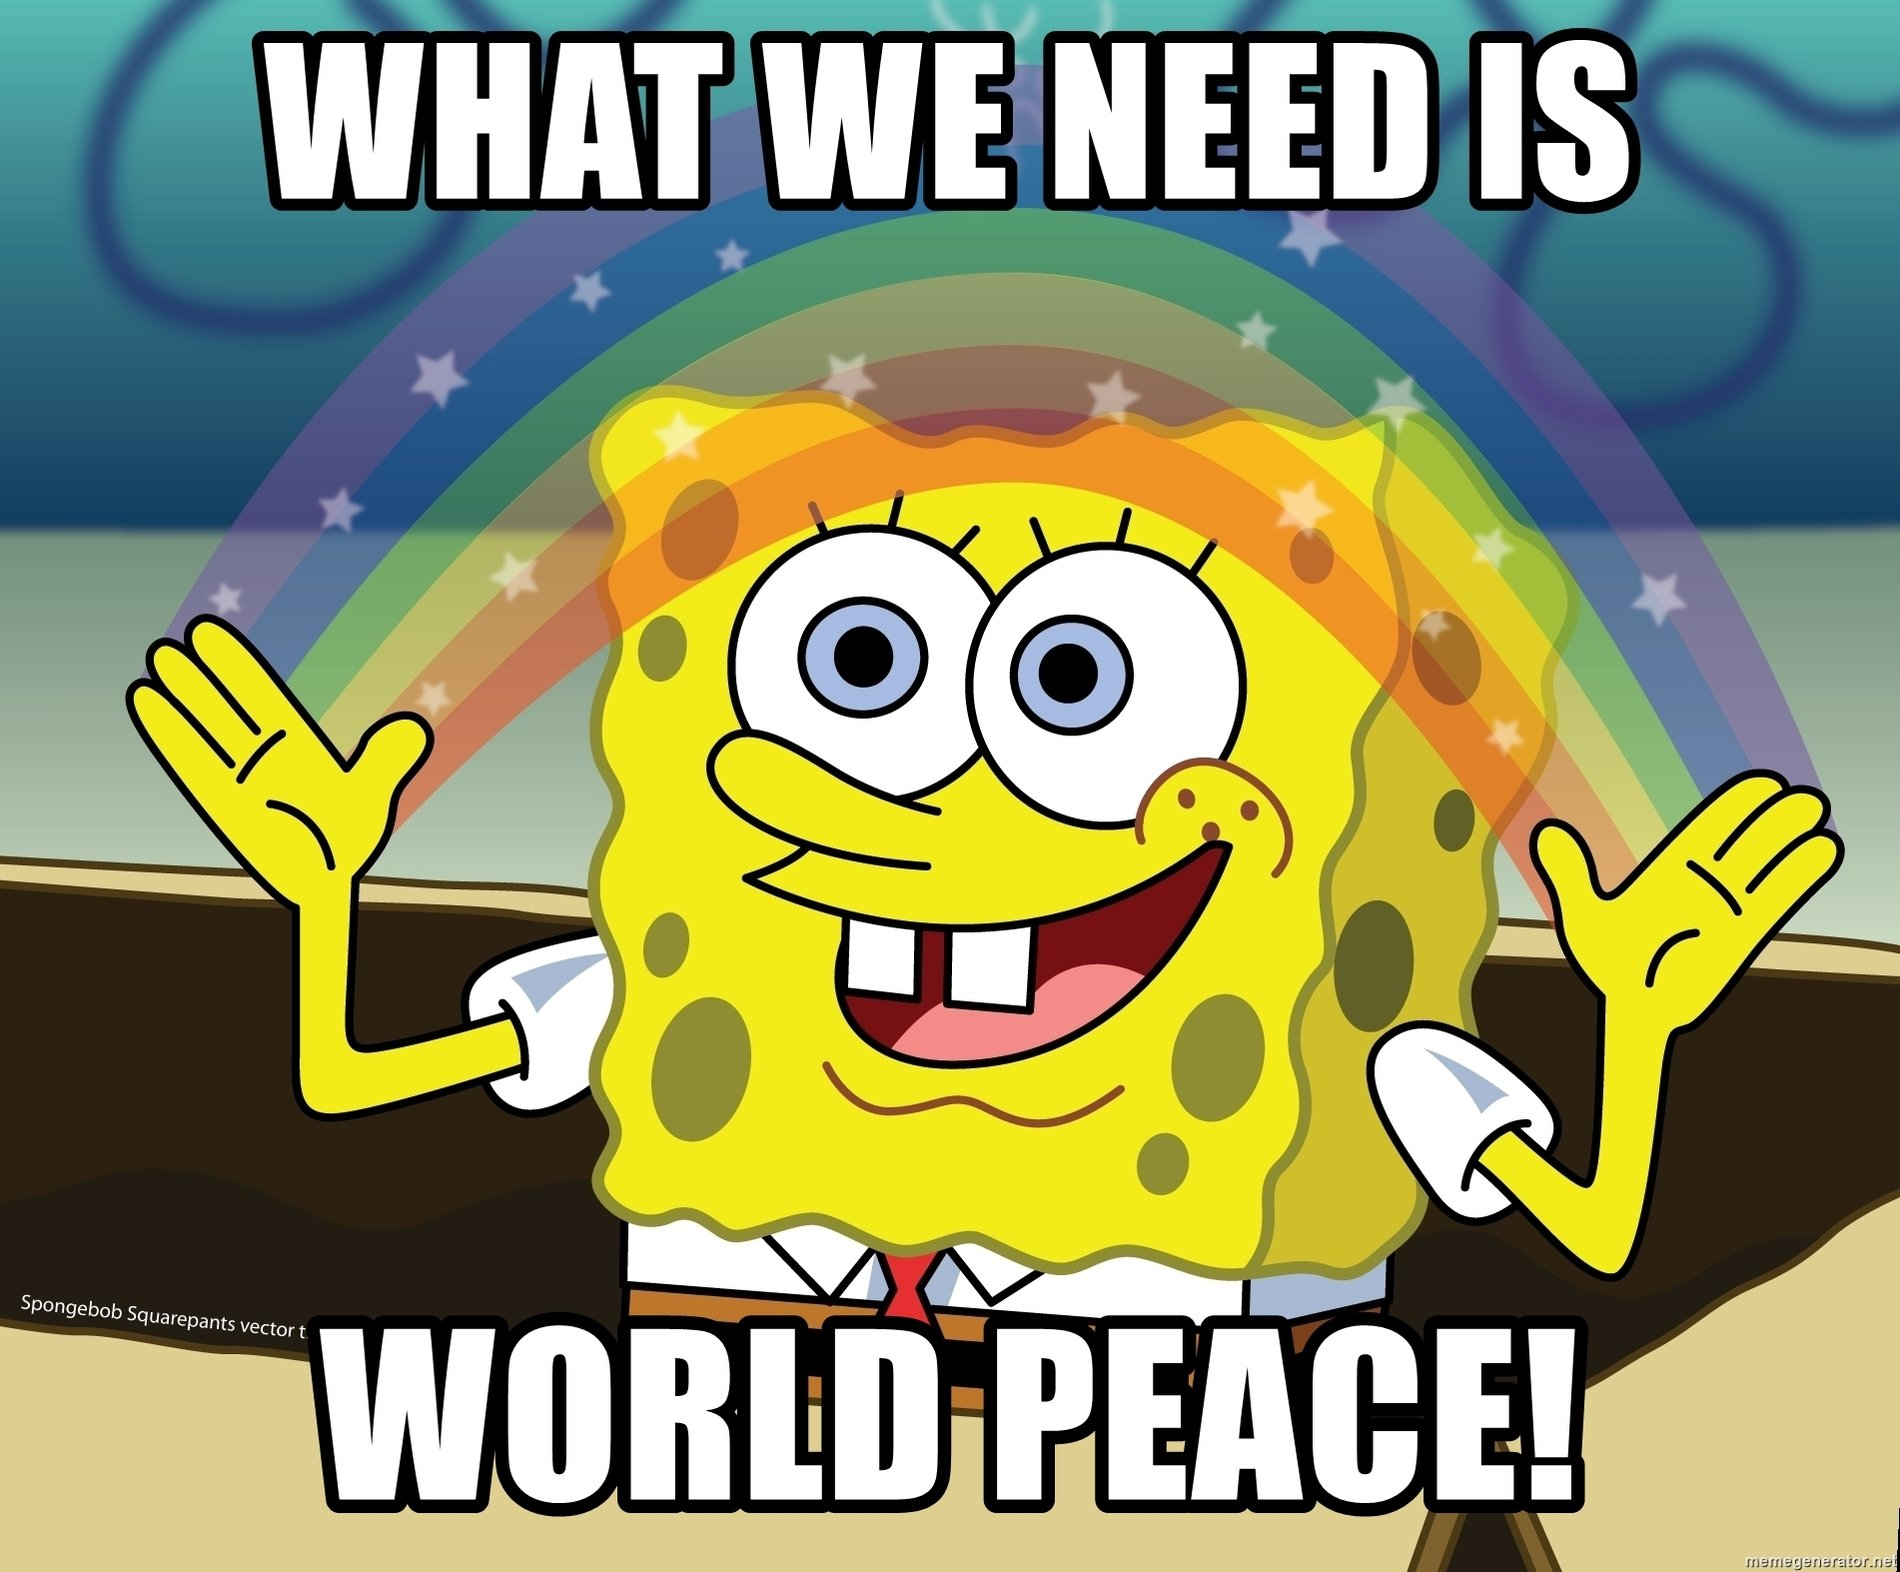 what-we-need-is-world-peace.jpg